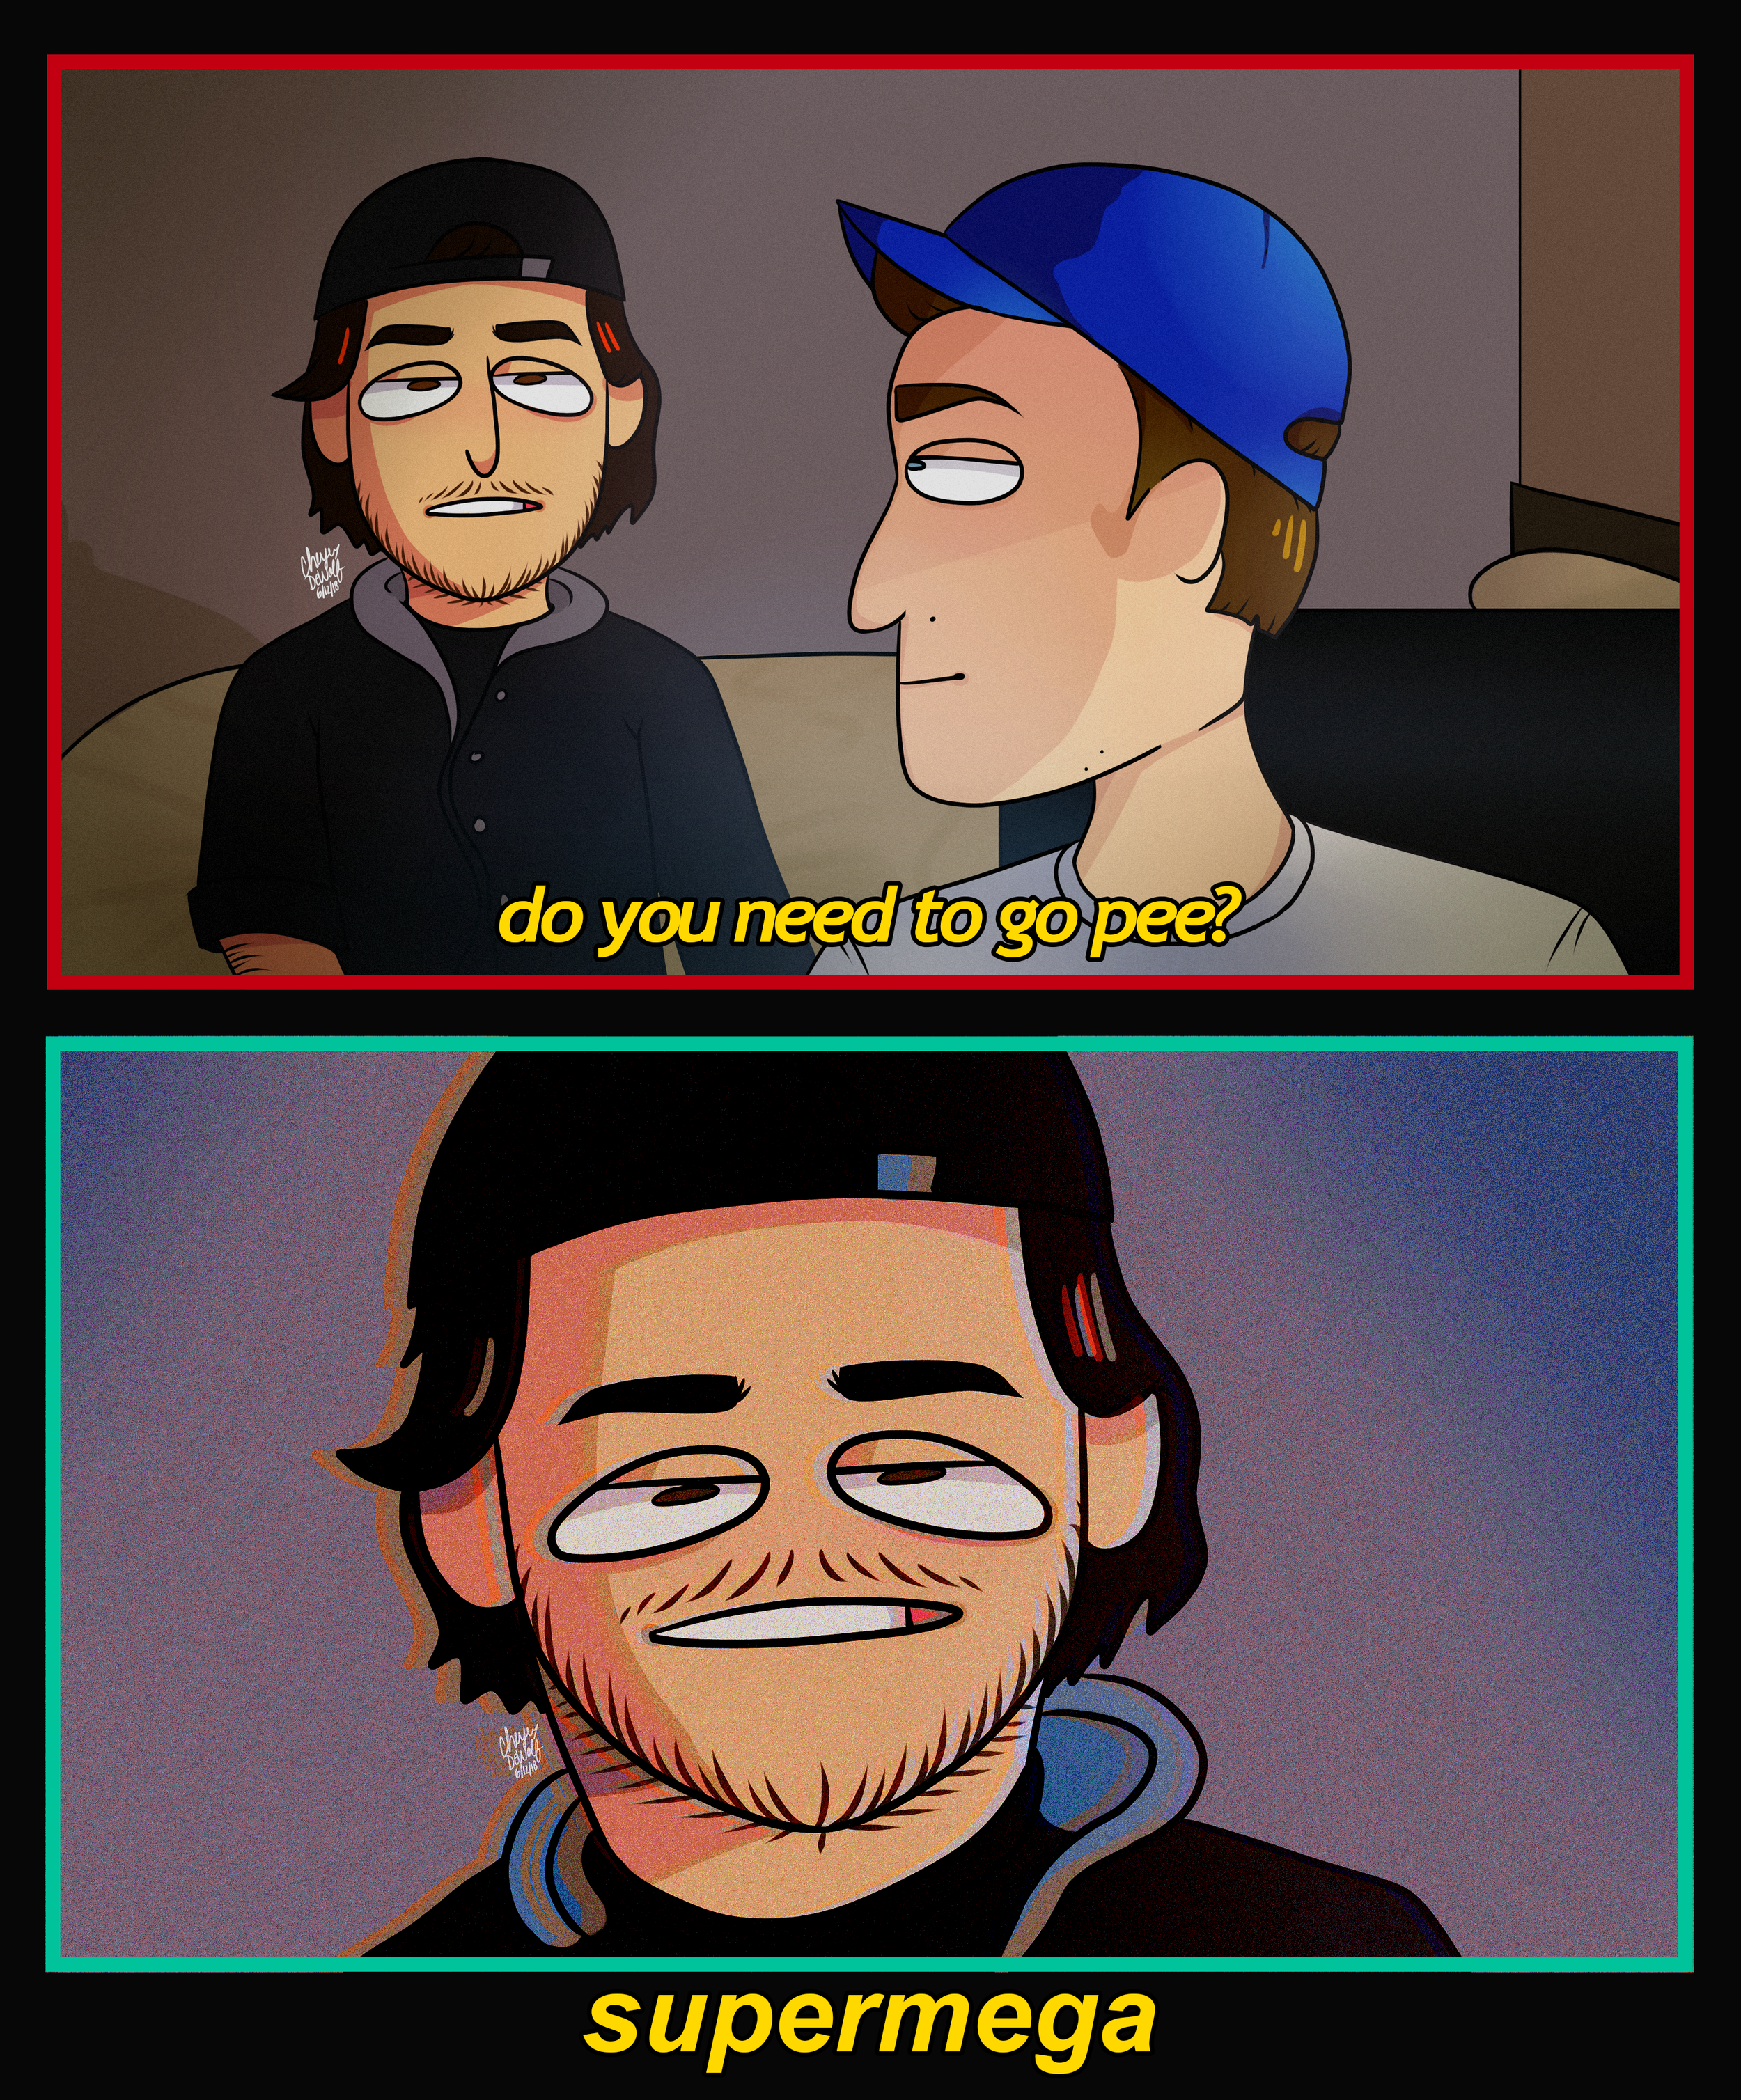 ryan-do-you-have-to-go-pee-final.png